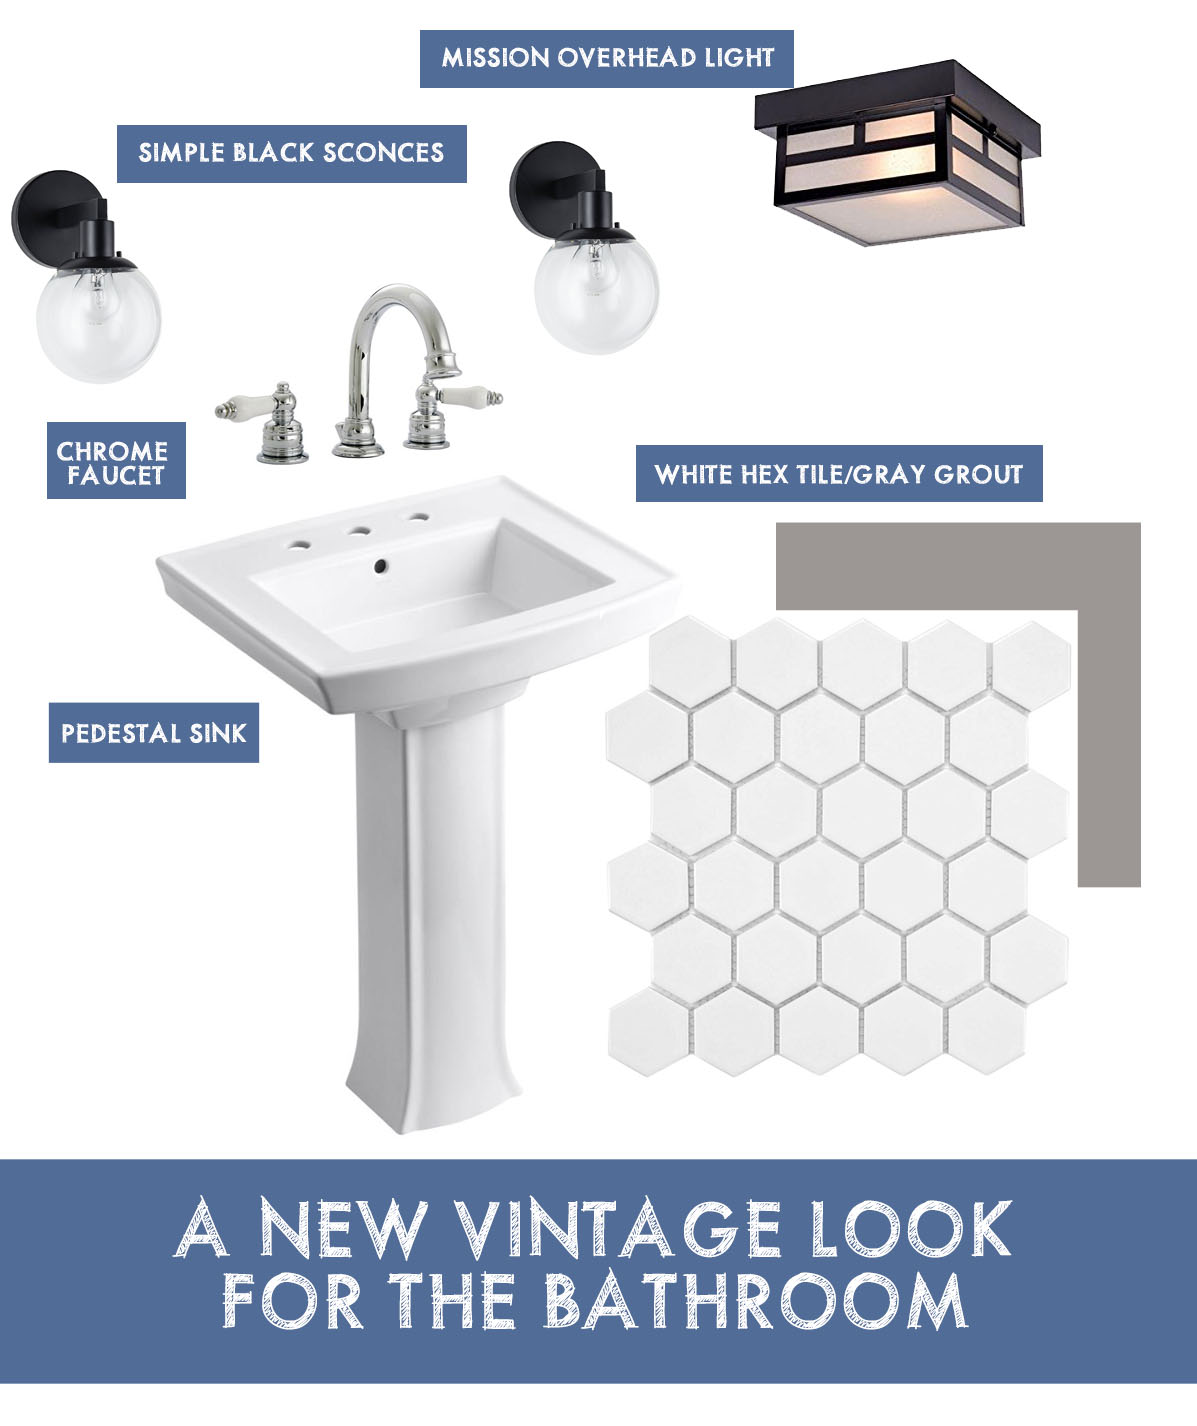 Vintage Style Bathroom on This American House - white pedestal sink, hex tile flooring and more